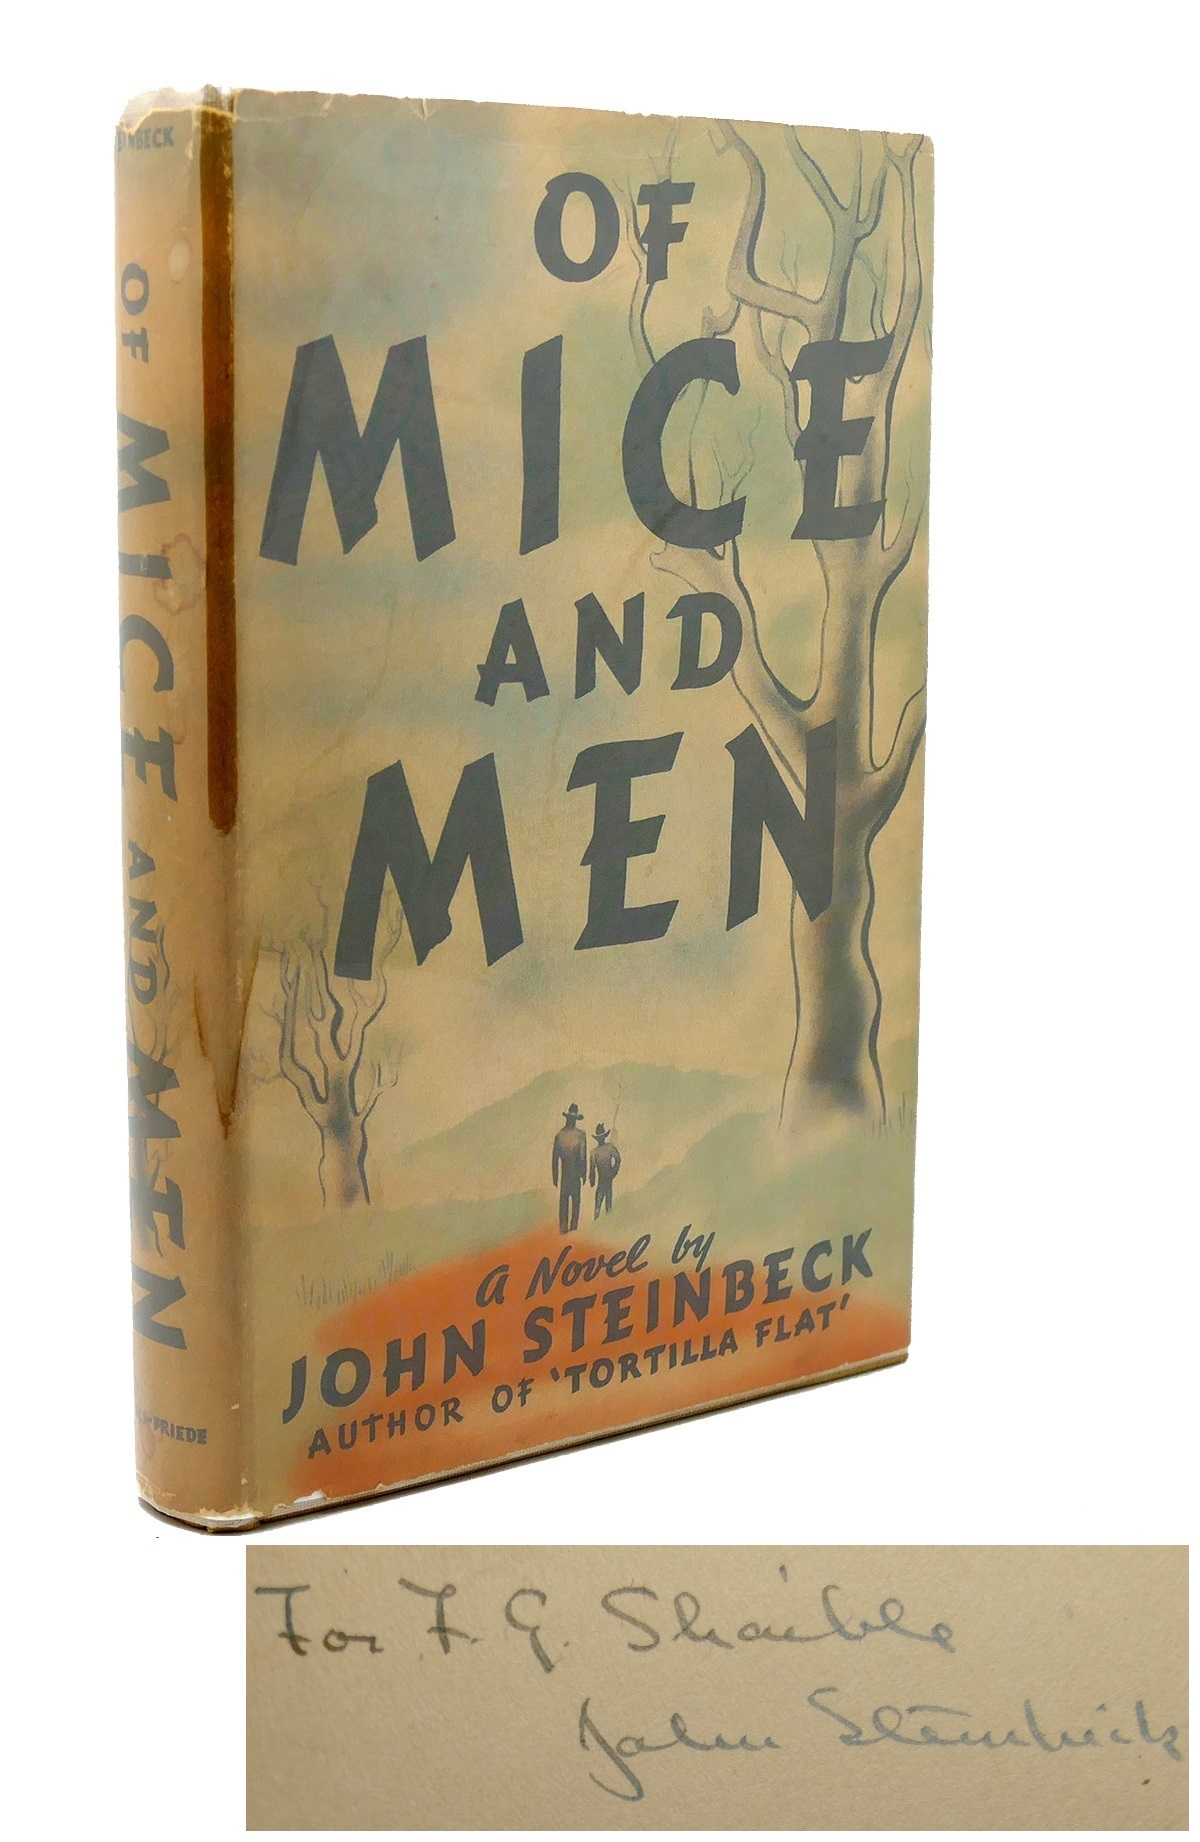 OF MICE AND MEN Signed 1st Issue!